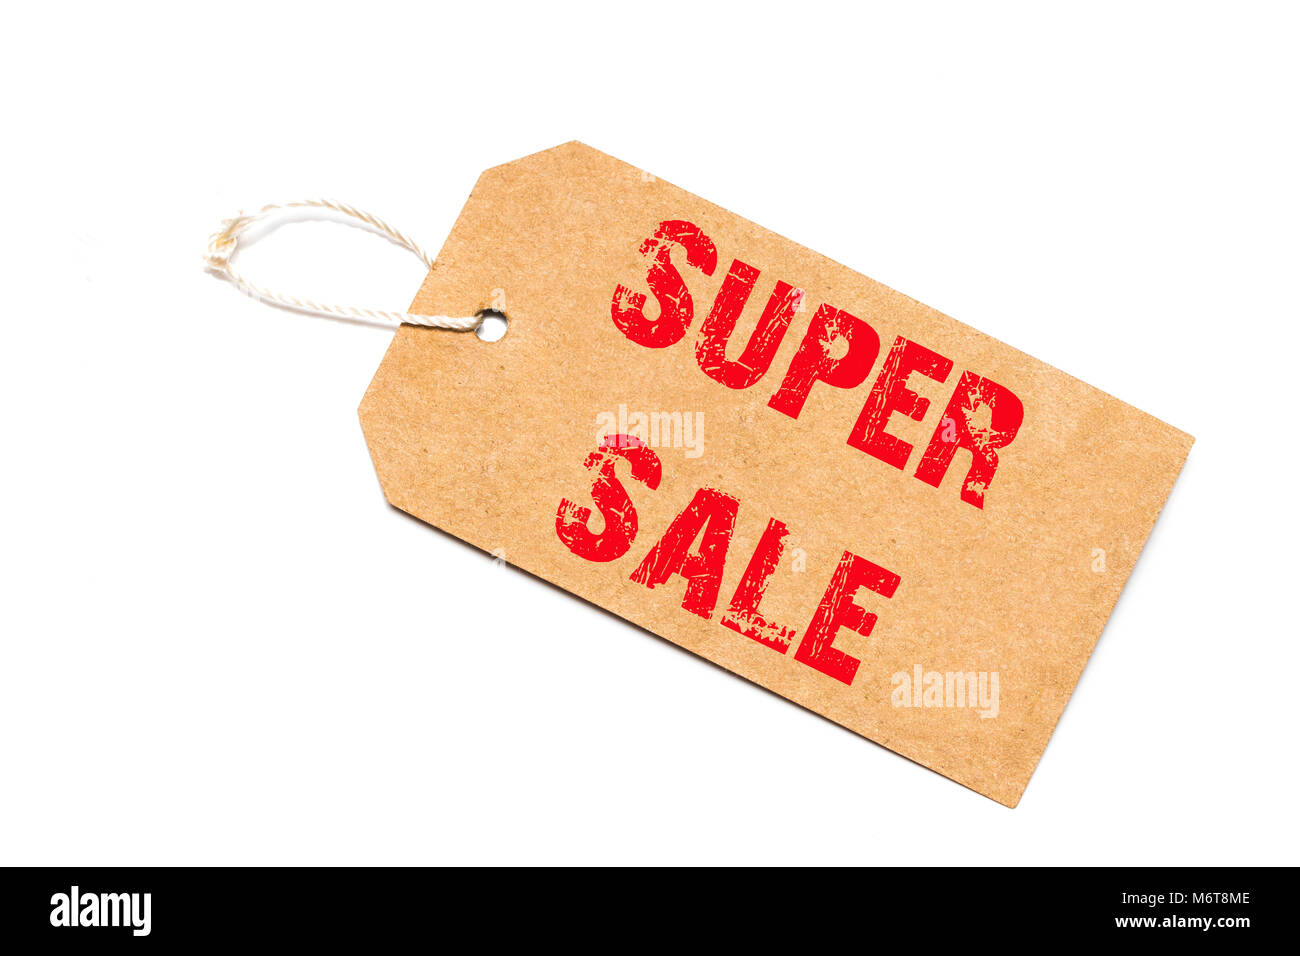 a brown paper label with the text  super sale written in it against a white   background. - Stock Image